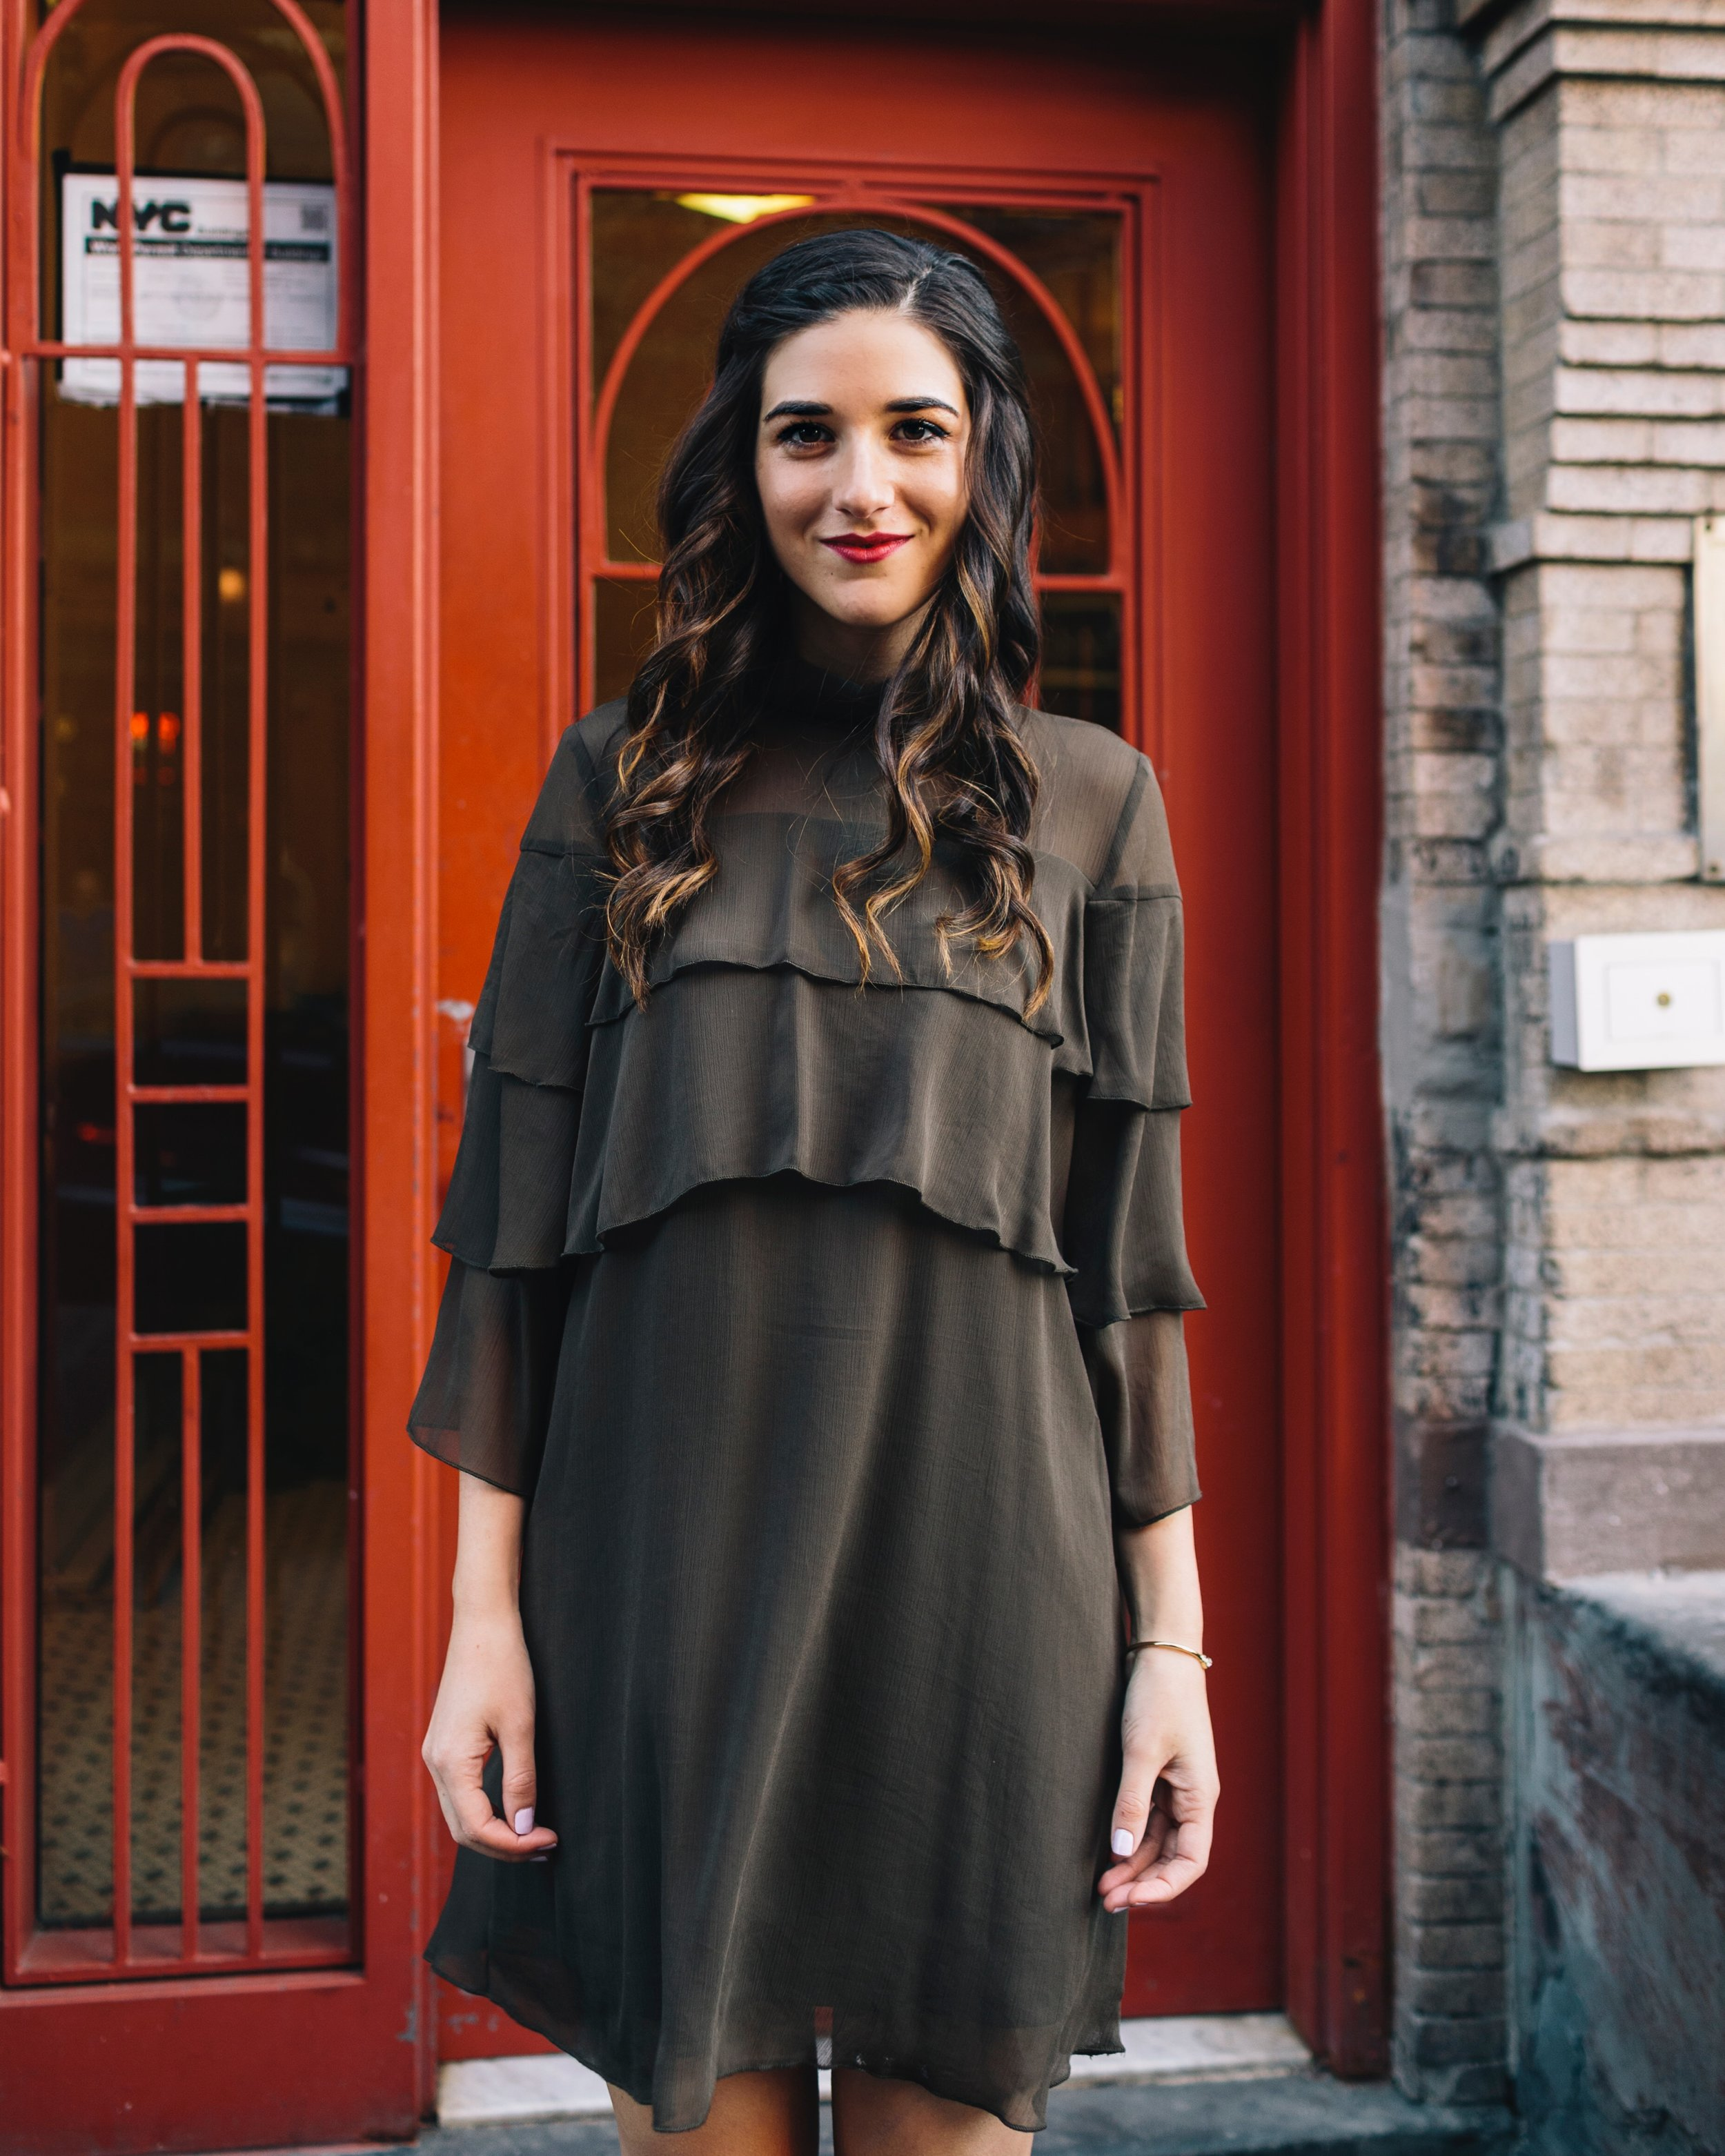 Olive Green Ruffle Dress + Lace Up Booties Payless Louboutins & Love Fashion Blog Esther Santer NYC Street Style Blogger Outfit OOTD Trendy Shoes Inspo Girly Fall Winter Hair Shopping Affordable Boots Photoshoot Wear Clothes Bracelet Pretty Beautiful.JPG